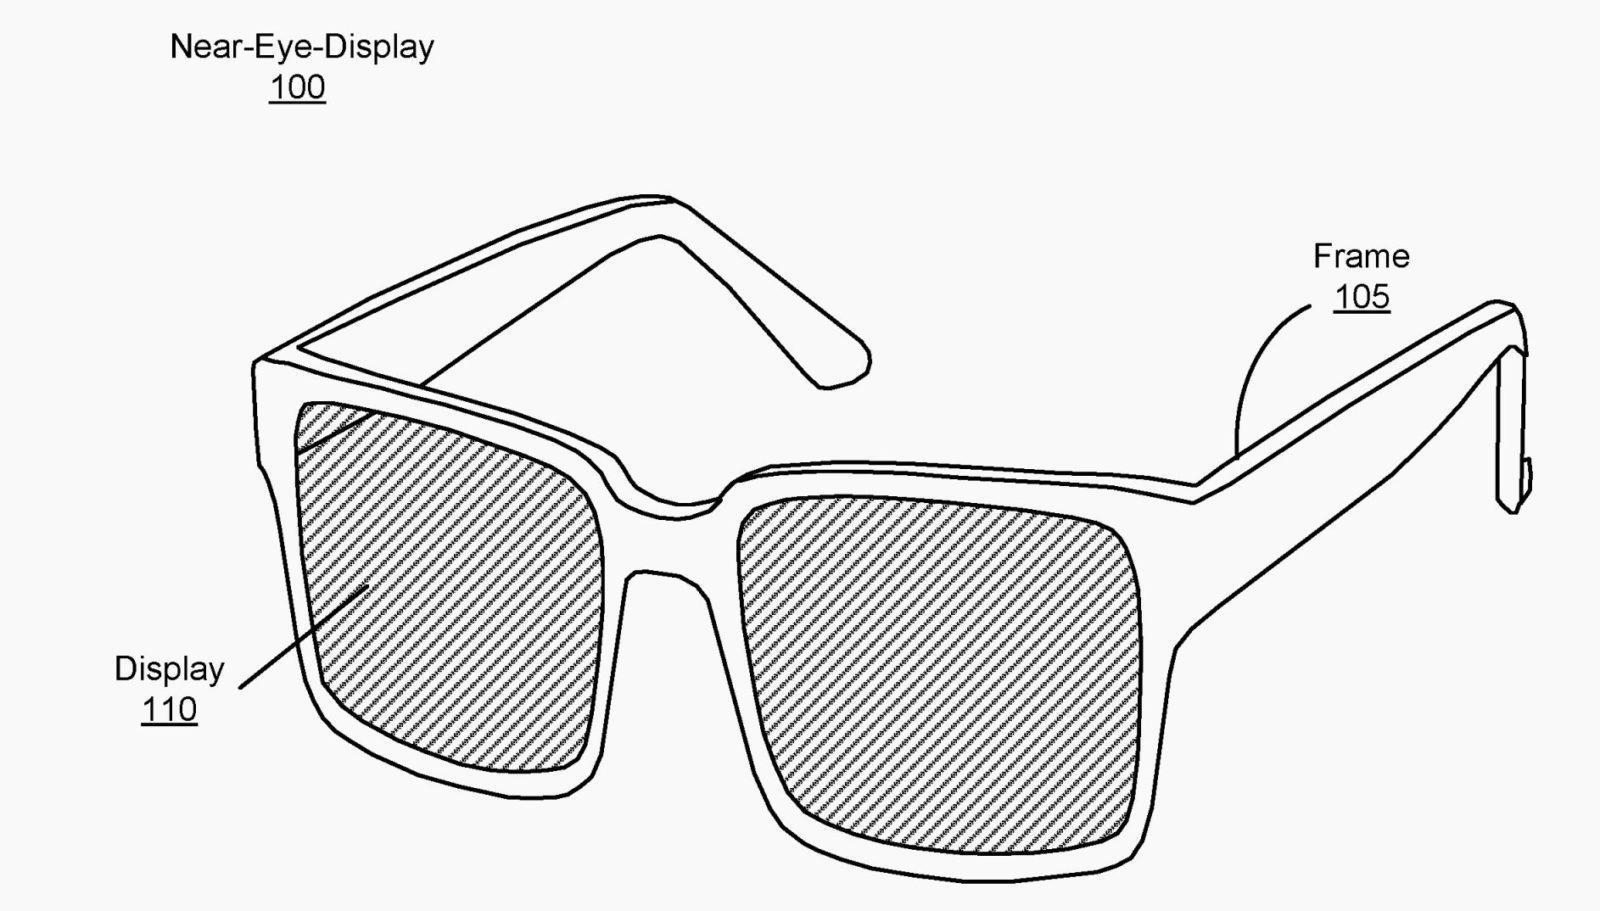 Facebook patents the design for their upcoming VR glass